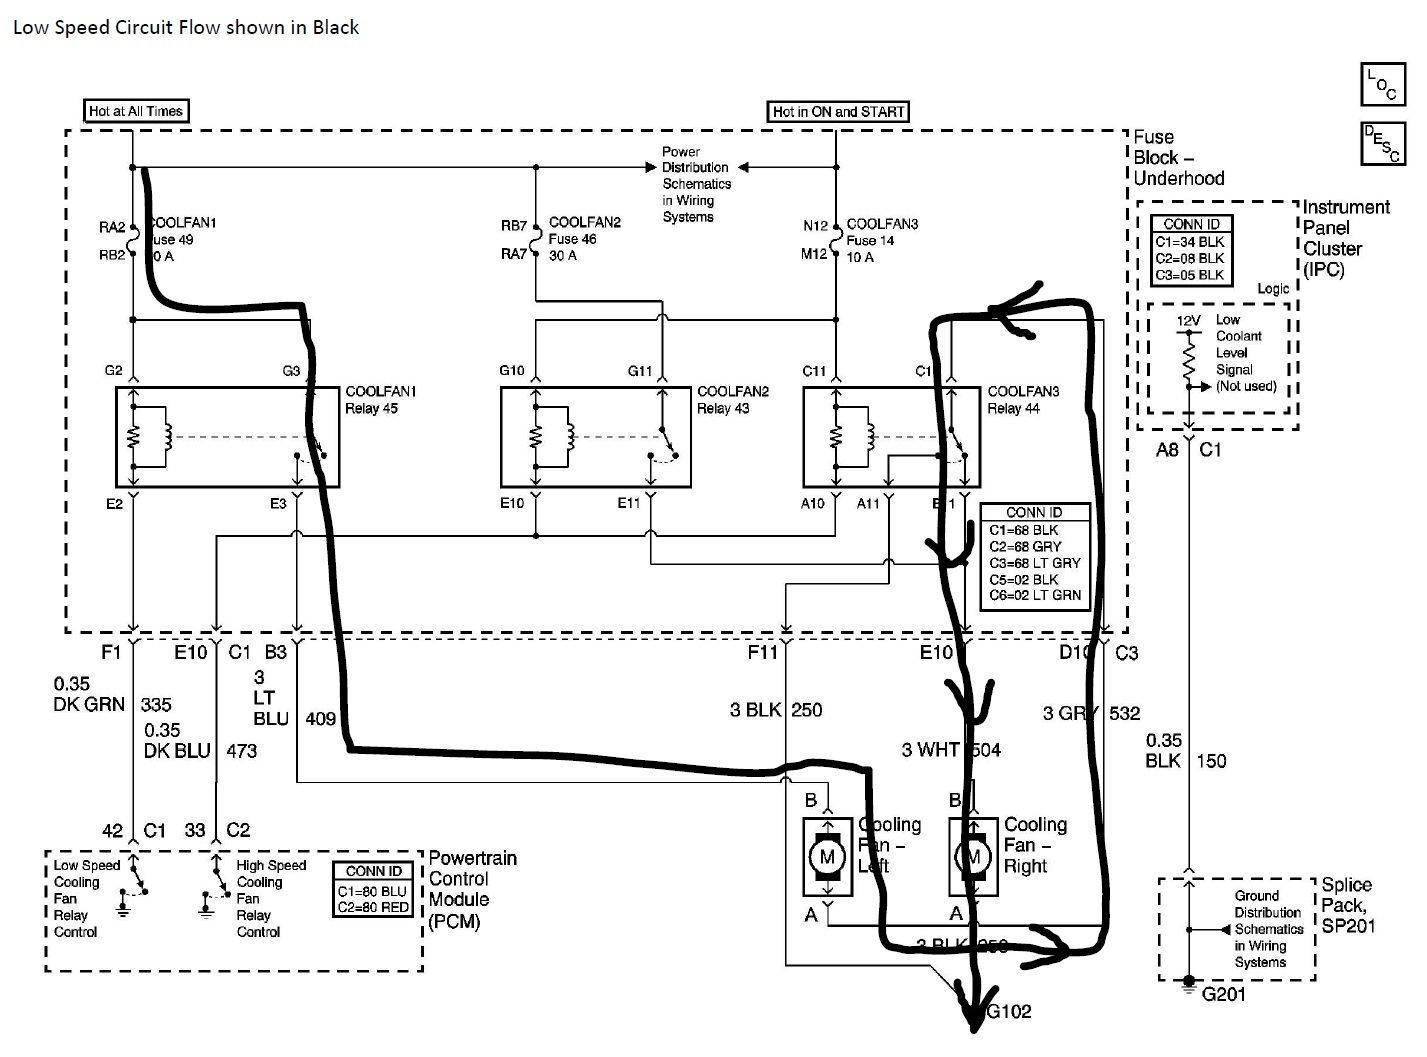 northern electric radiator fan wiring diagram wiring library  northern electric radiator fan wiring diagram #2